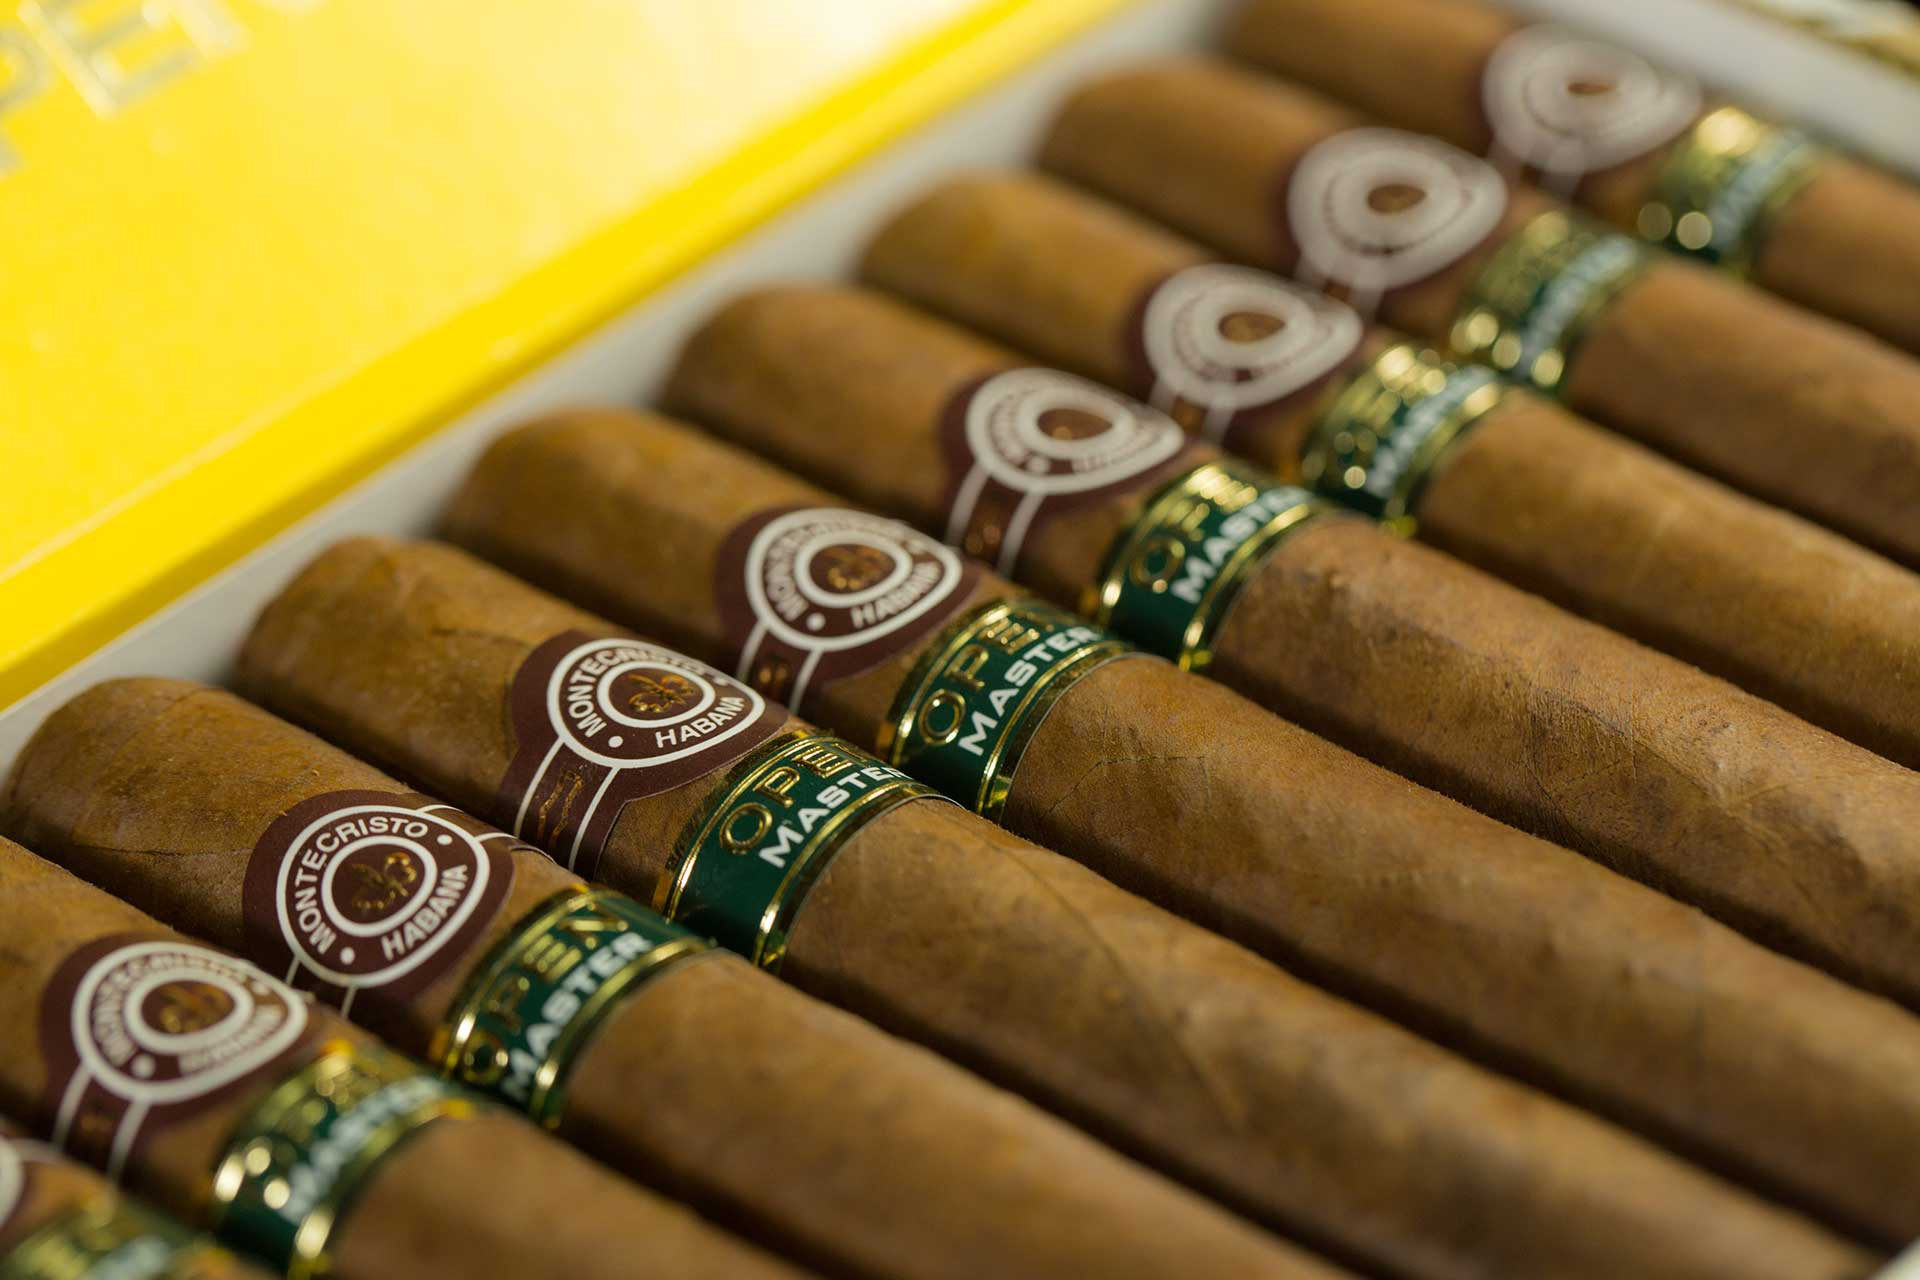 a row of cigars in the box